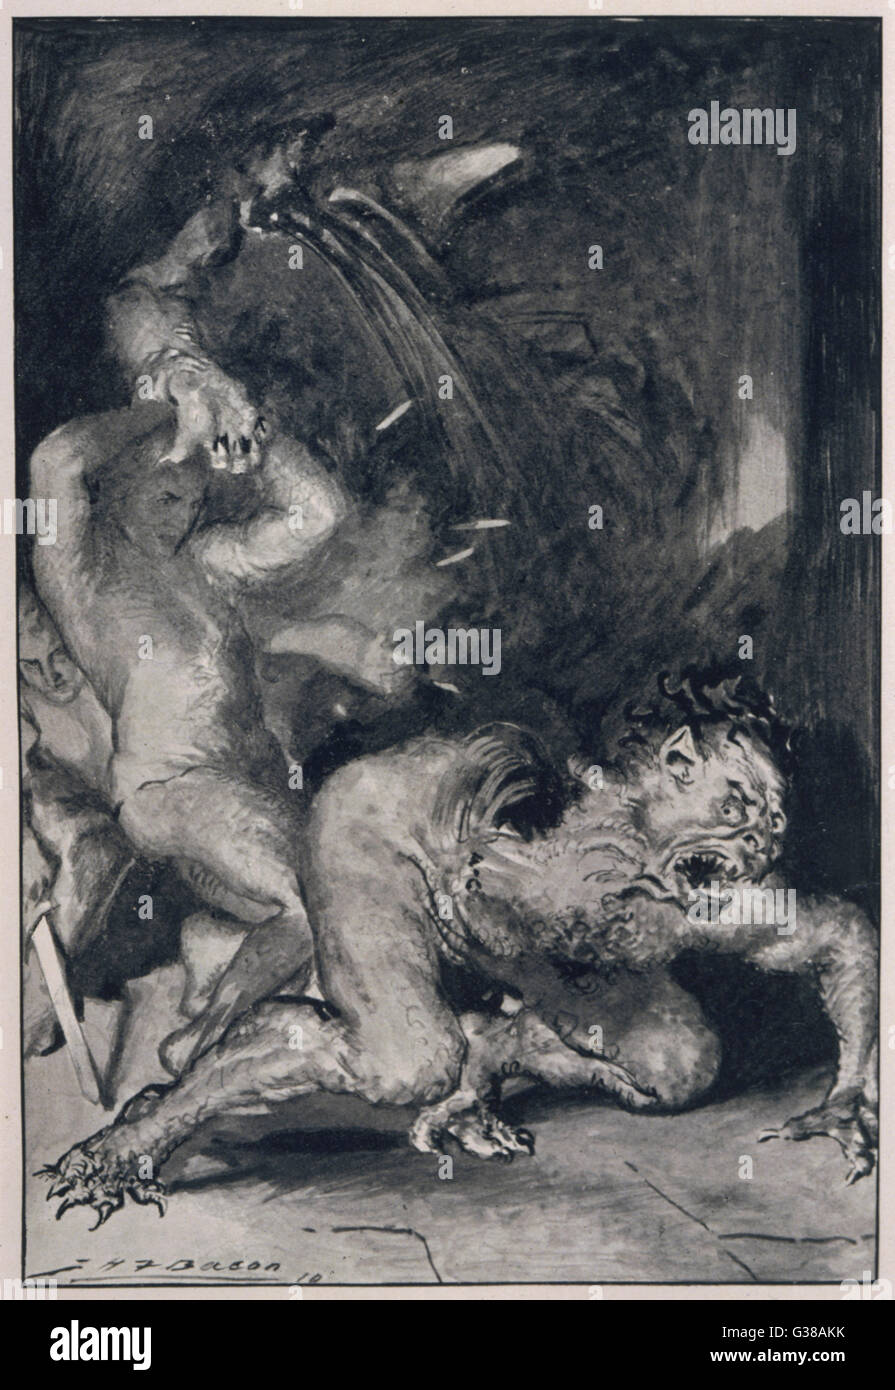 Beowulf, who has the strength  of thirty men, rips off the  arm of Grendel the monster. - Stock Image